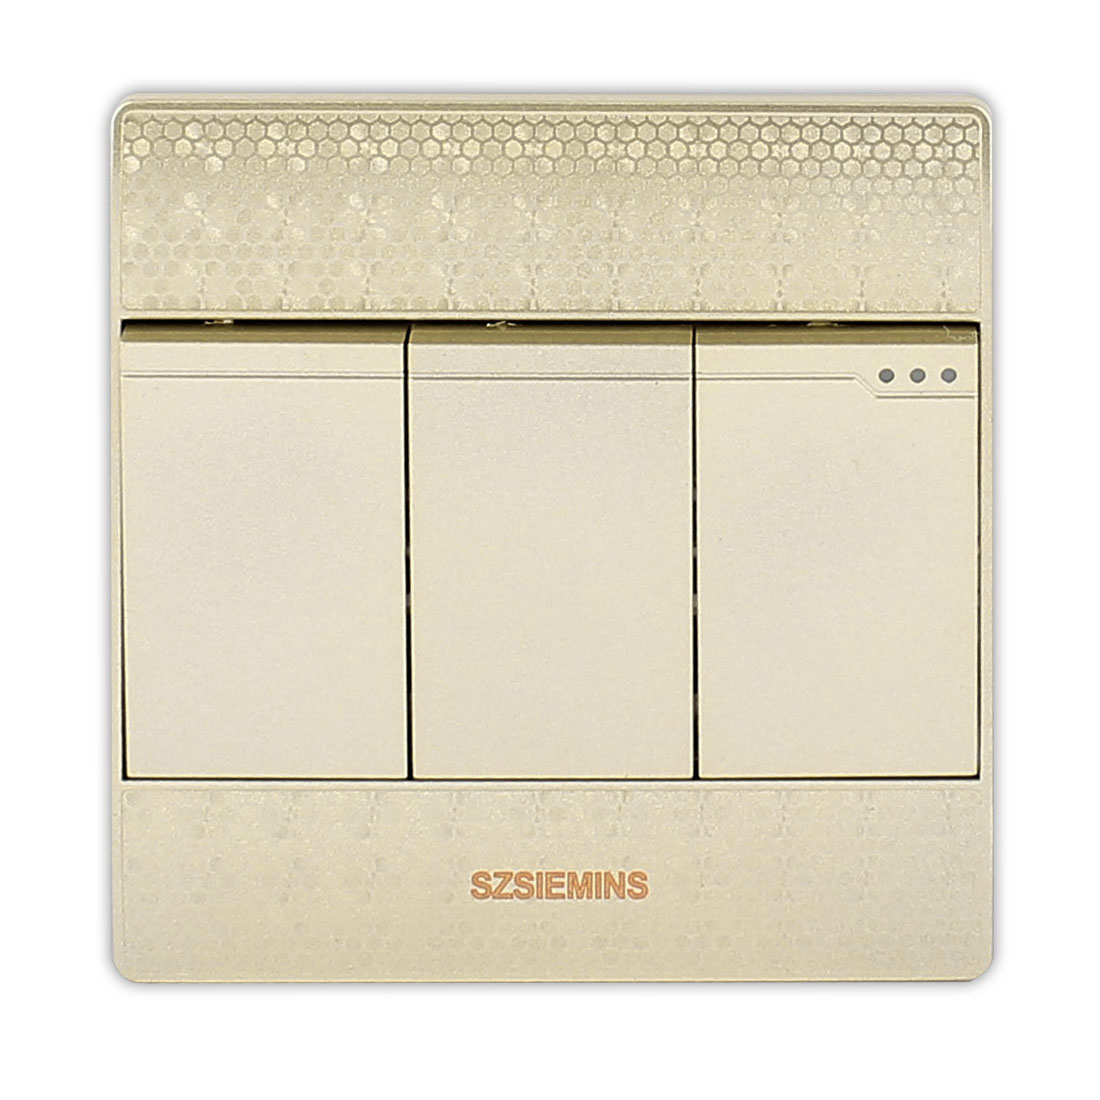 AC 250V 10A 3 Gang 1 Way On/Off Wall Mounting Press Button Switch Light Control Champagne Gold